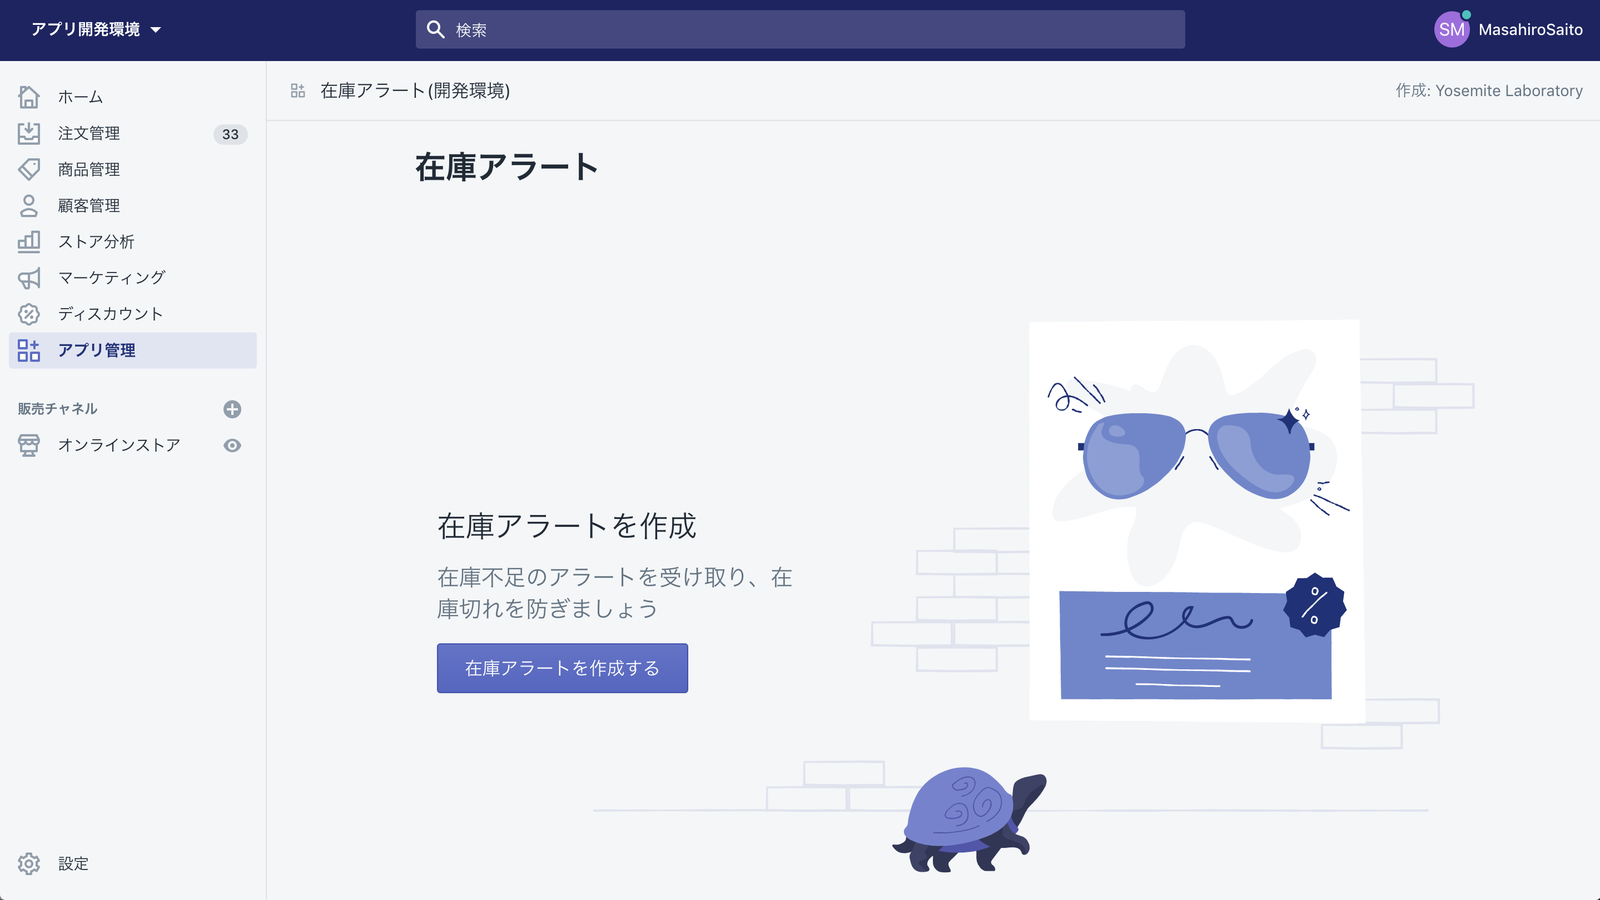 Onboarding page